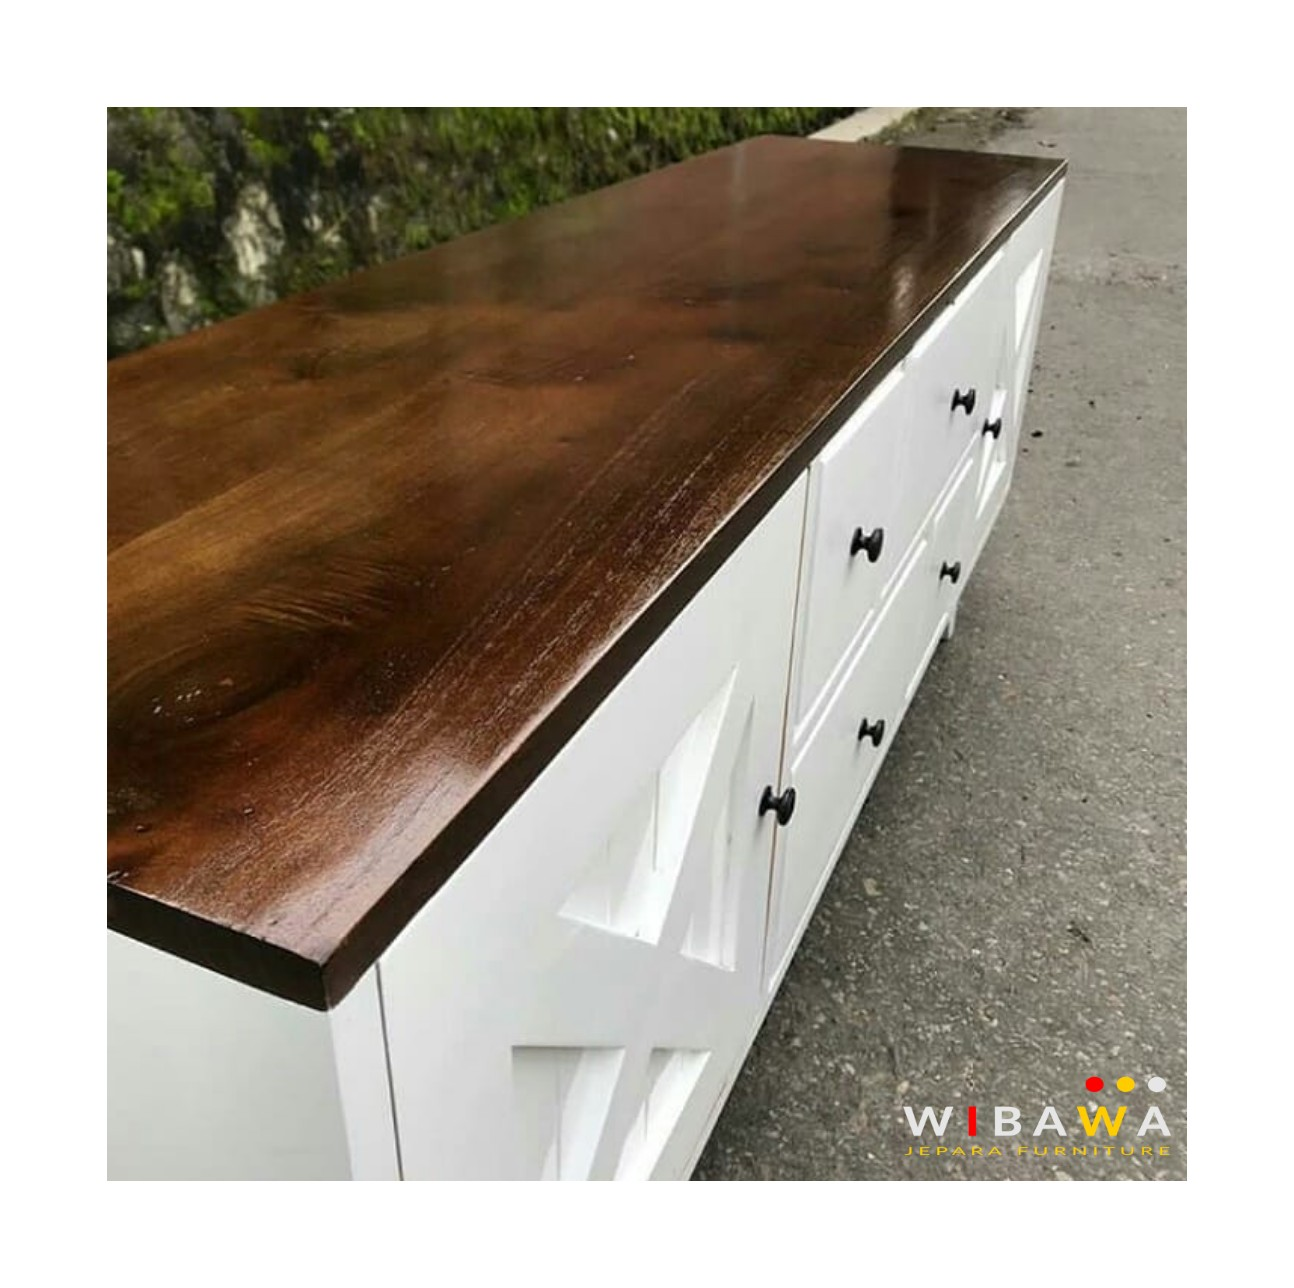 detail Buffet Tv Meja TV Nakas Drawer Serbaguna Model Retro,meja tv kayu,rak tv kayu murah,rak tv minimalis olympic,harga rak tv kayu murah,meja tv minimalis modern informa,harga meja tv kecil,model rak tv minimalis